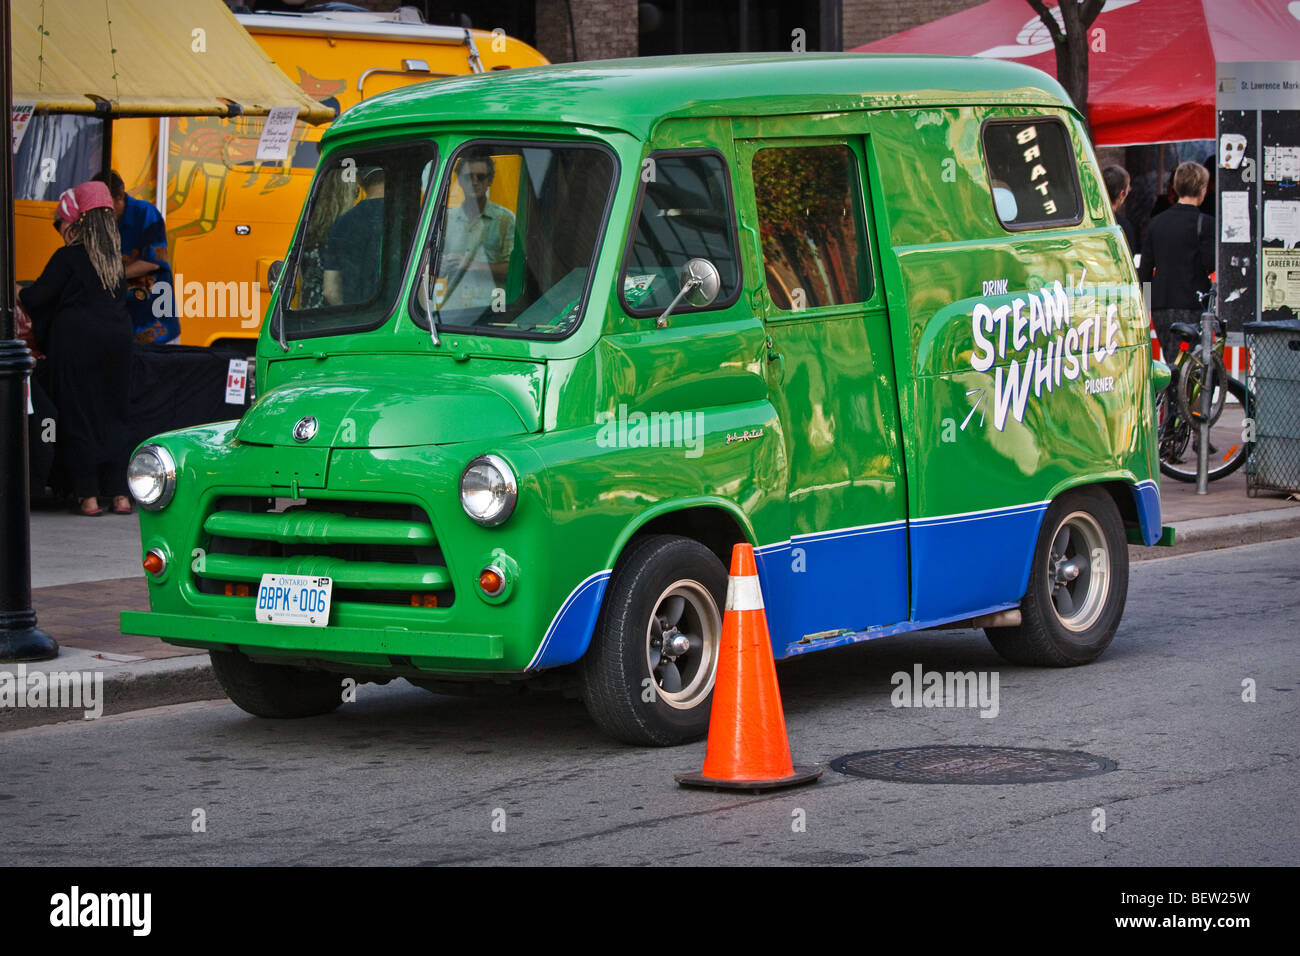 Dodge Ram vehicle promoting Steam Whistle Canadian beer - Stock Image